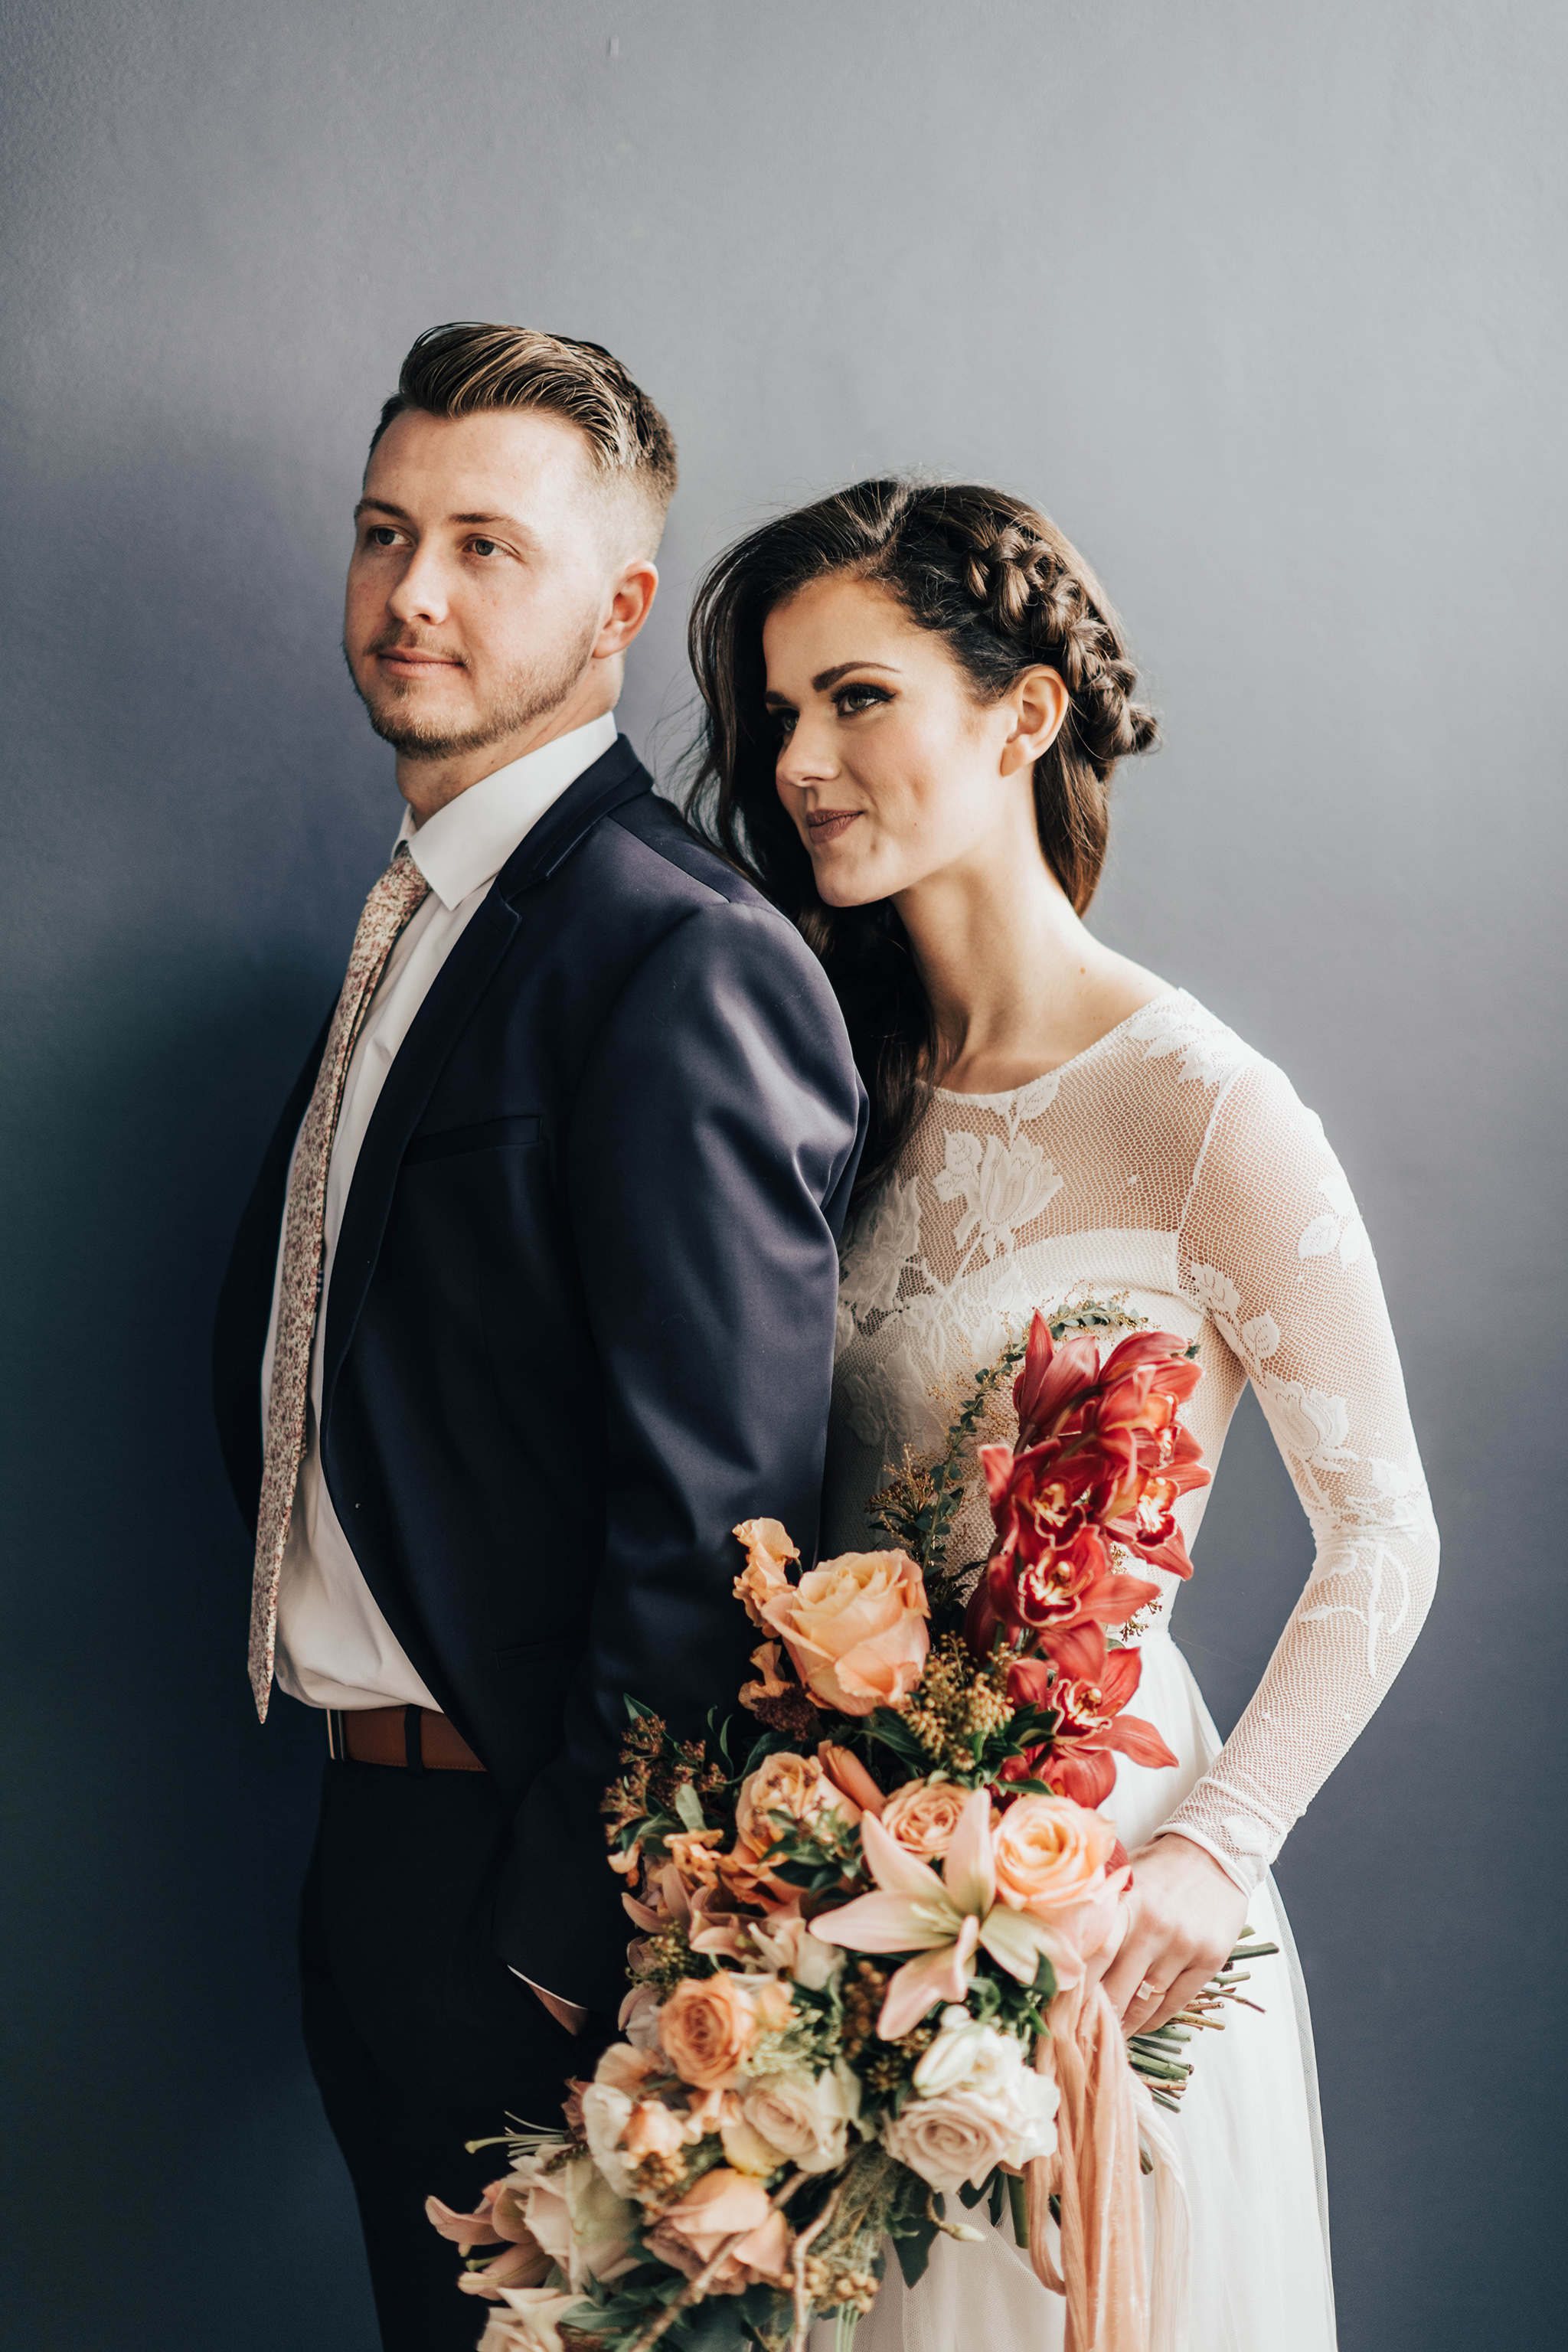 The Potted Pansy Indoor Elopement